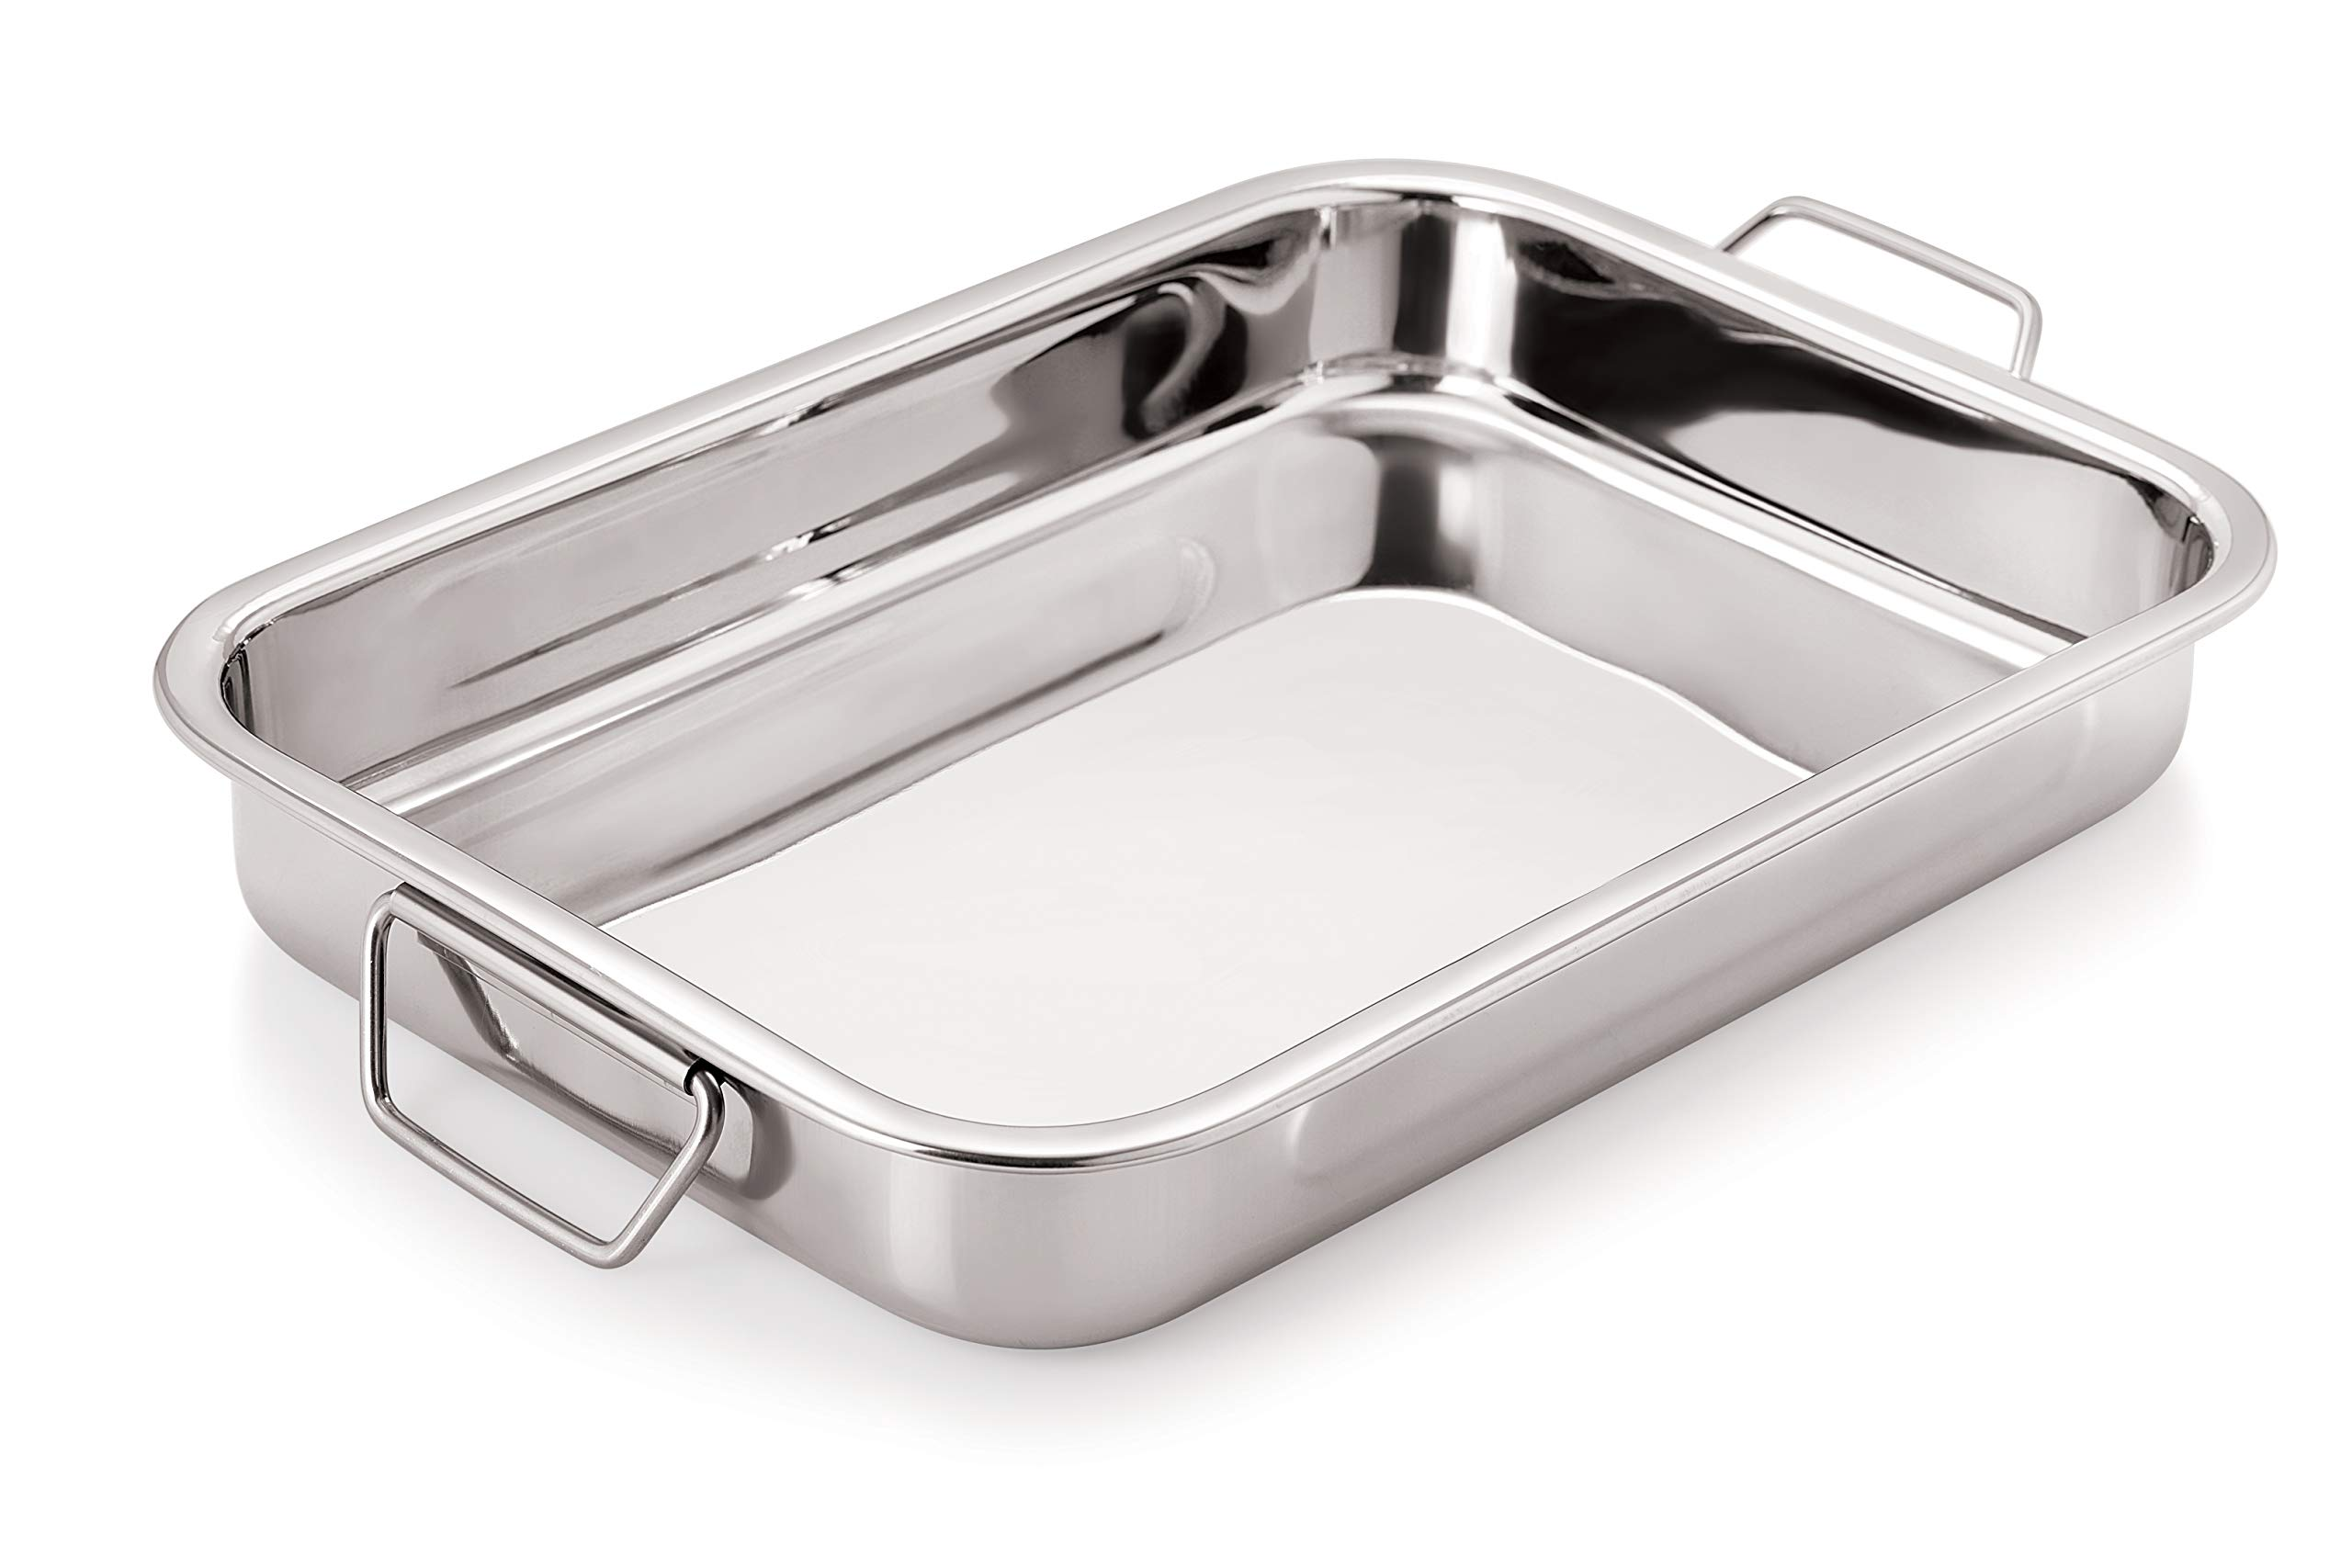 Chef Direct Stainless Steel Roast Pan with Folding Handles Rectangular Lasagna Pan for Baking, Roasting, Grilling - Length 40 cm X Width 28 cm